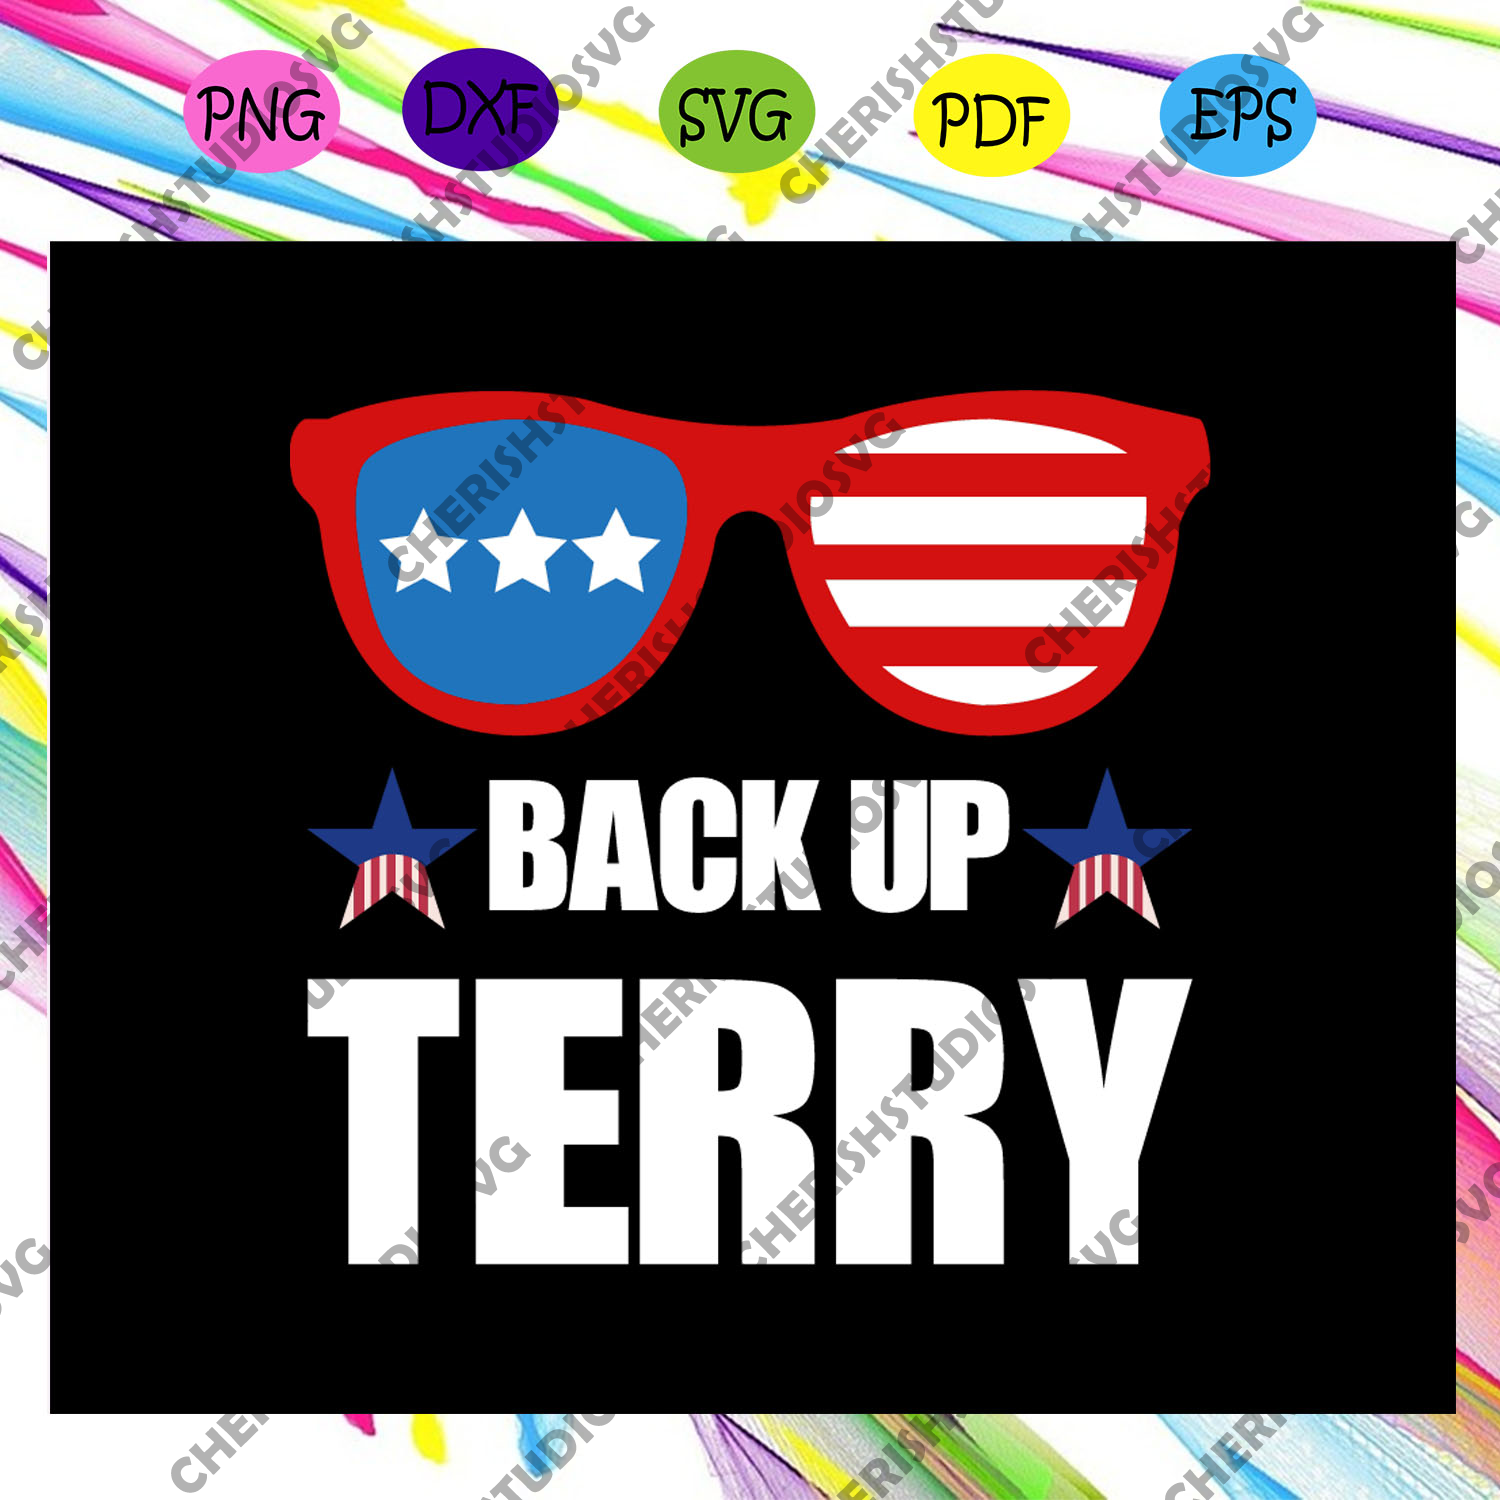 Back up terry, American Svg, 4th Of July Svg, Fourth Of July Svg, Patriotic American Svg, Independence Day Svg, Memorial Day, Files For Silhouette, Files For Cricut, SVG, DXF, EPS, PNG, Instant Download